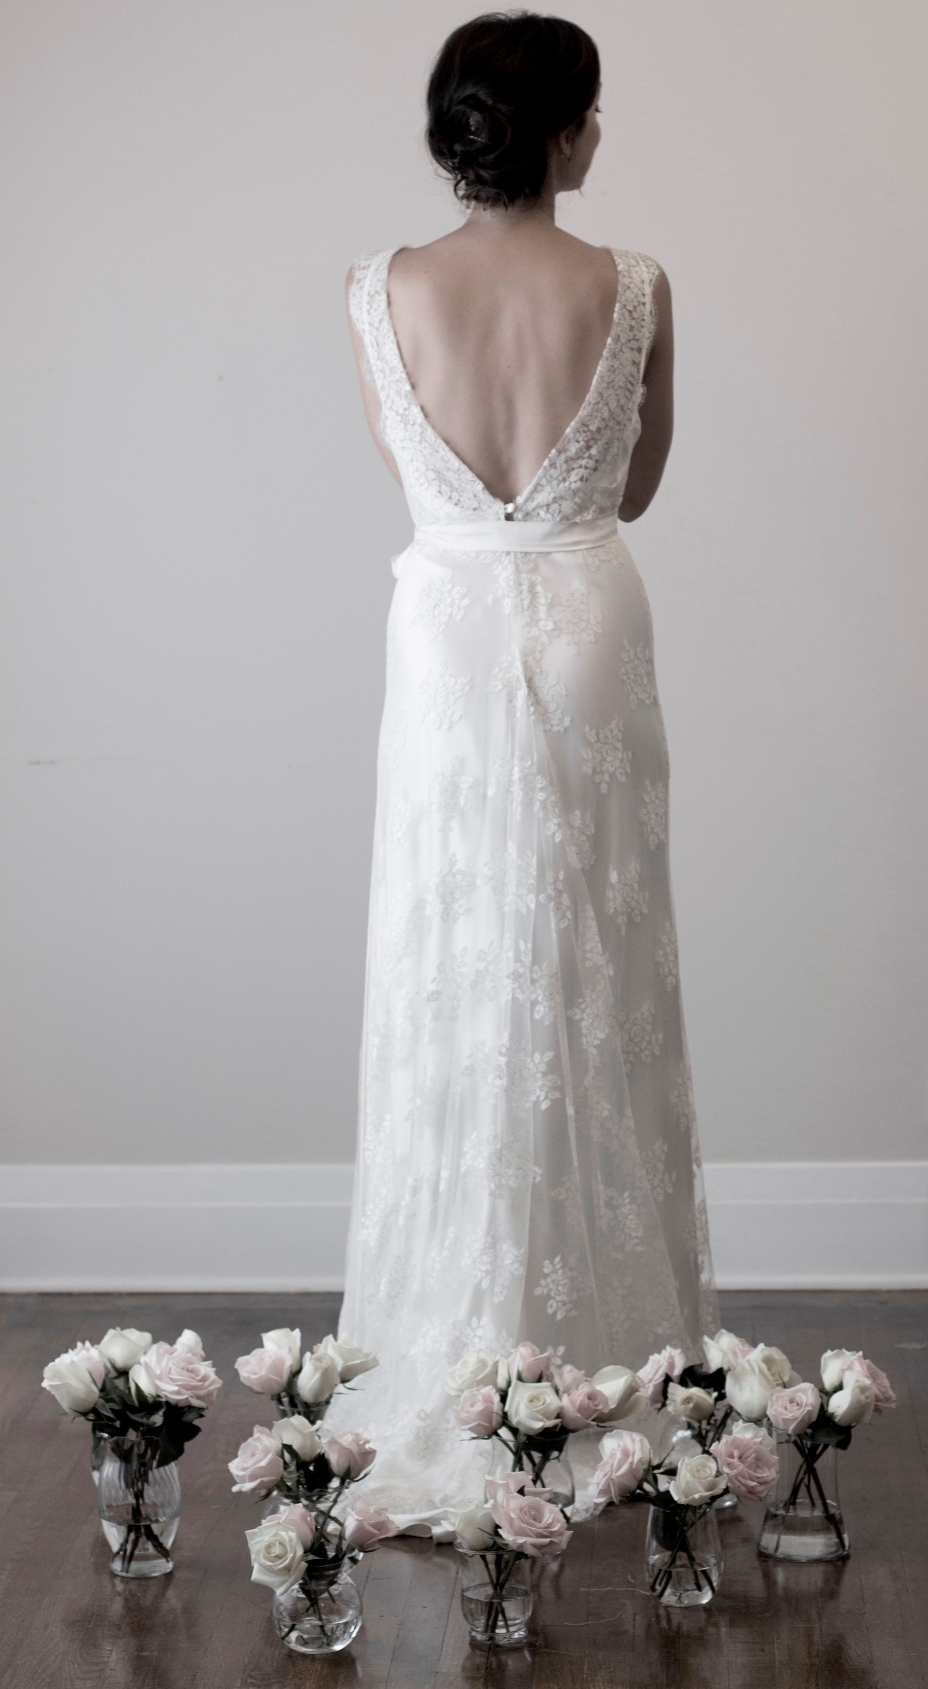 Rose & Delilah's Tyler Wedding Dress